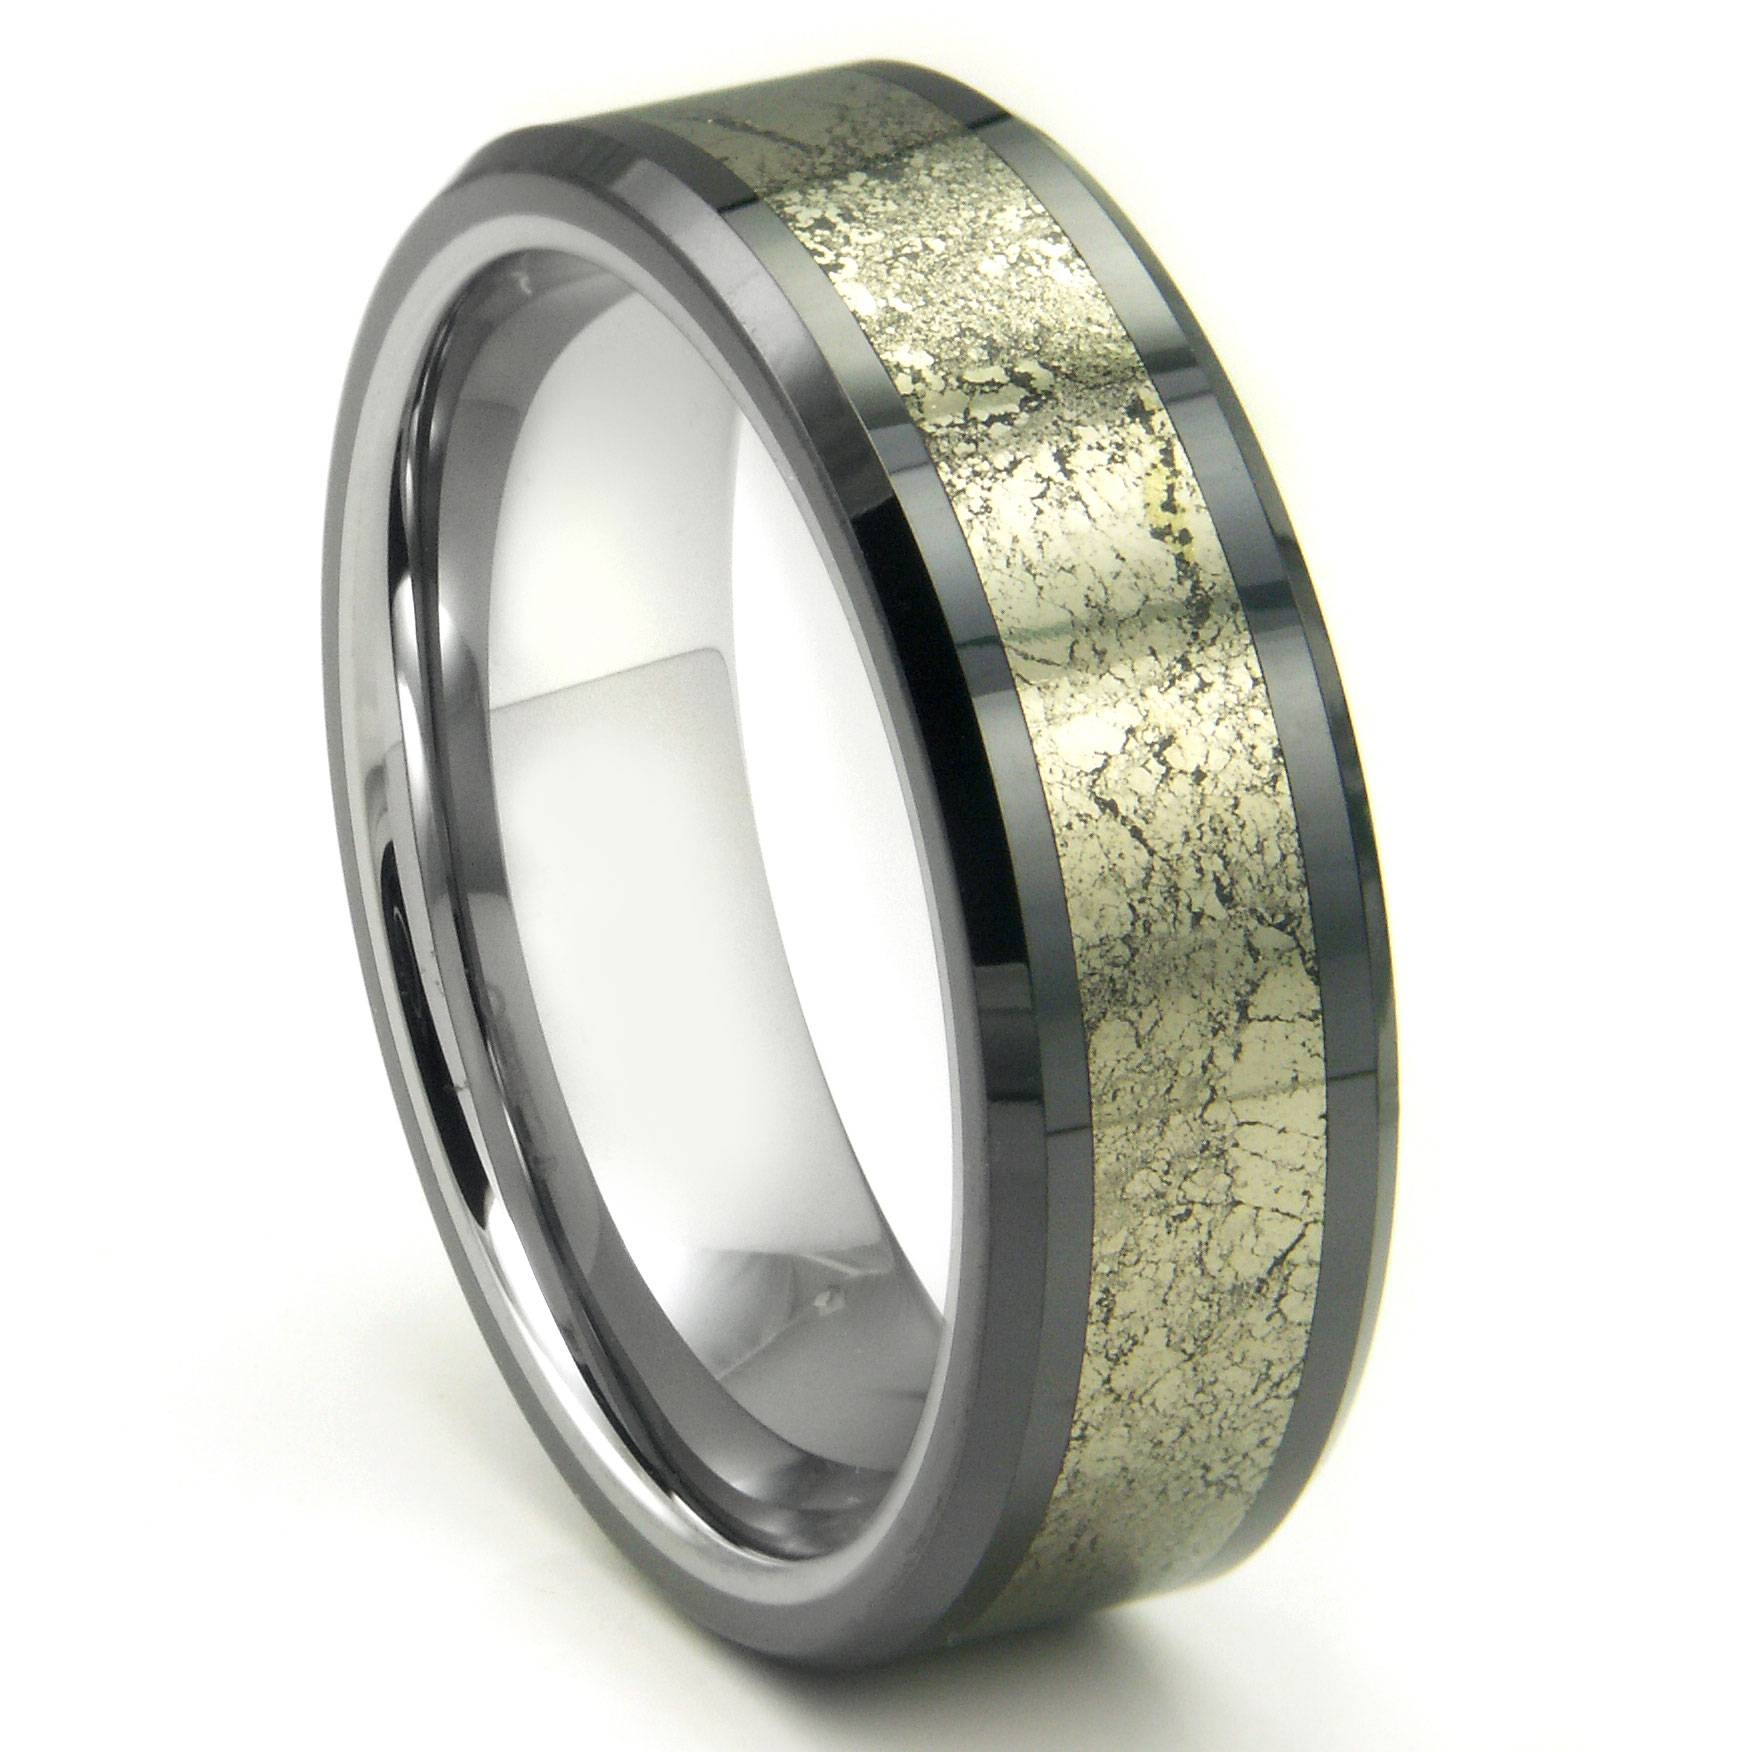 Tungsten Carbide Golden Meteorite Inlay Wedding Band Ring Pertaining To Tungsten Wedding Bands (View 5 of 15)